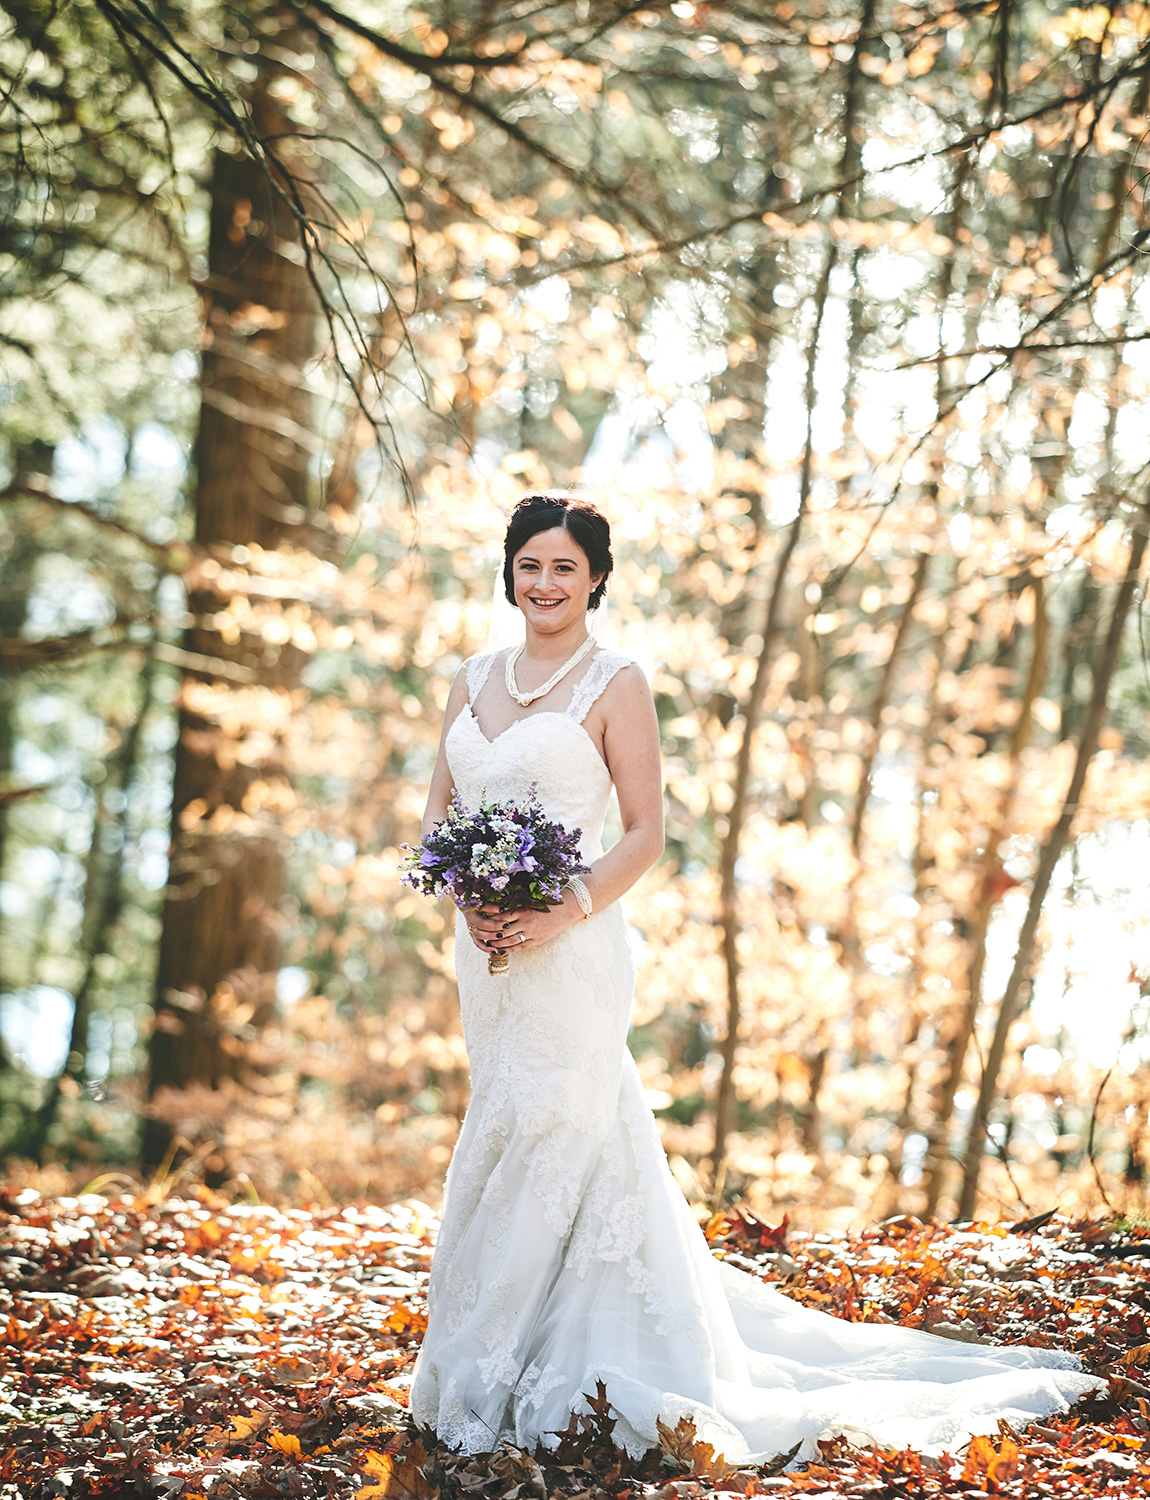 161119_ArrowParkLake&LodgeWedding_By_BriJohnsonWeddings_0072.jpg